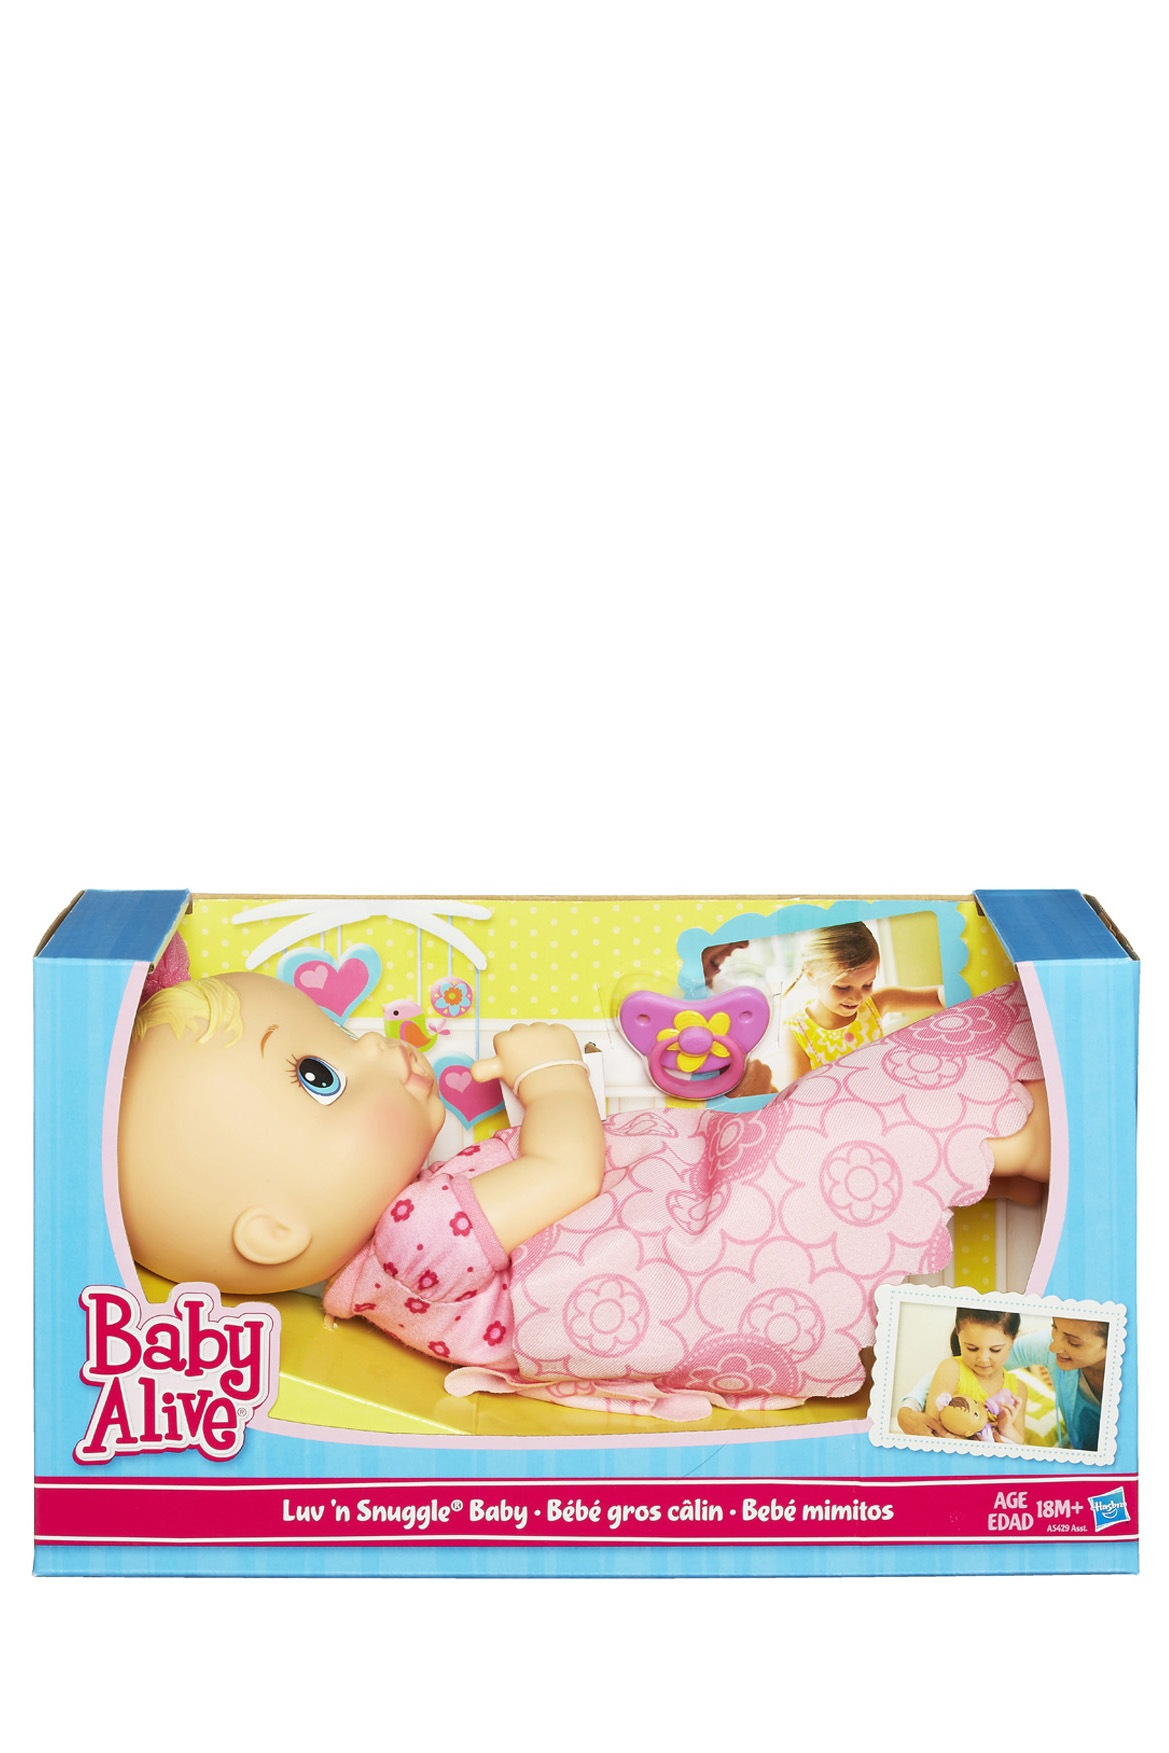 Baby Gift Myer : Baby alive luv n snuggle myer